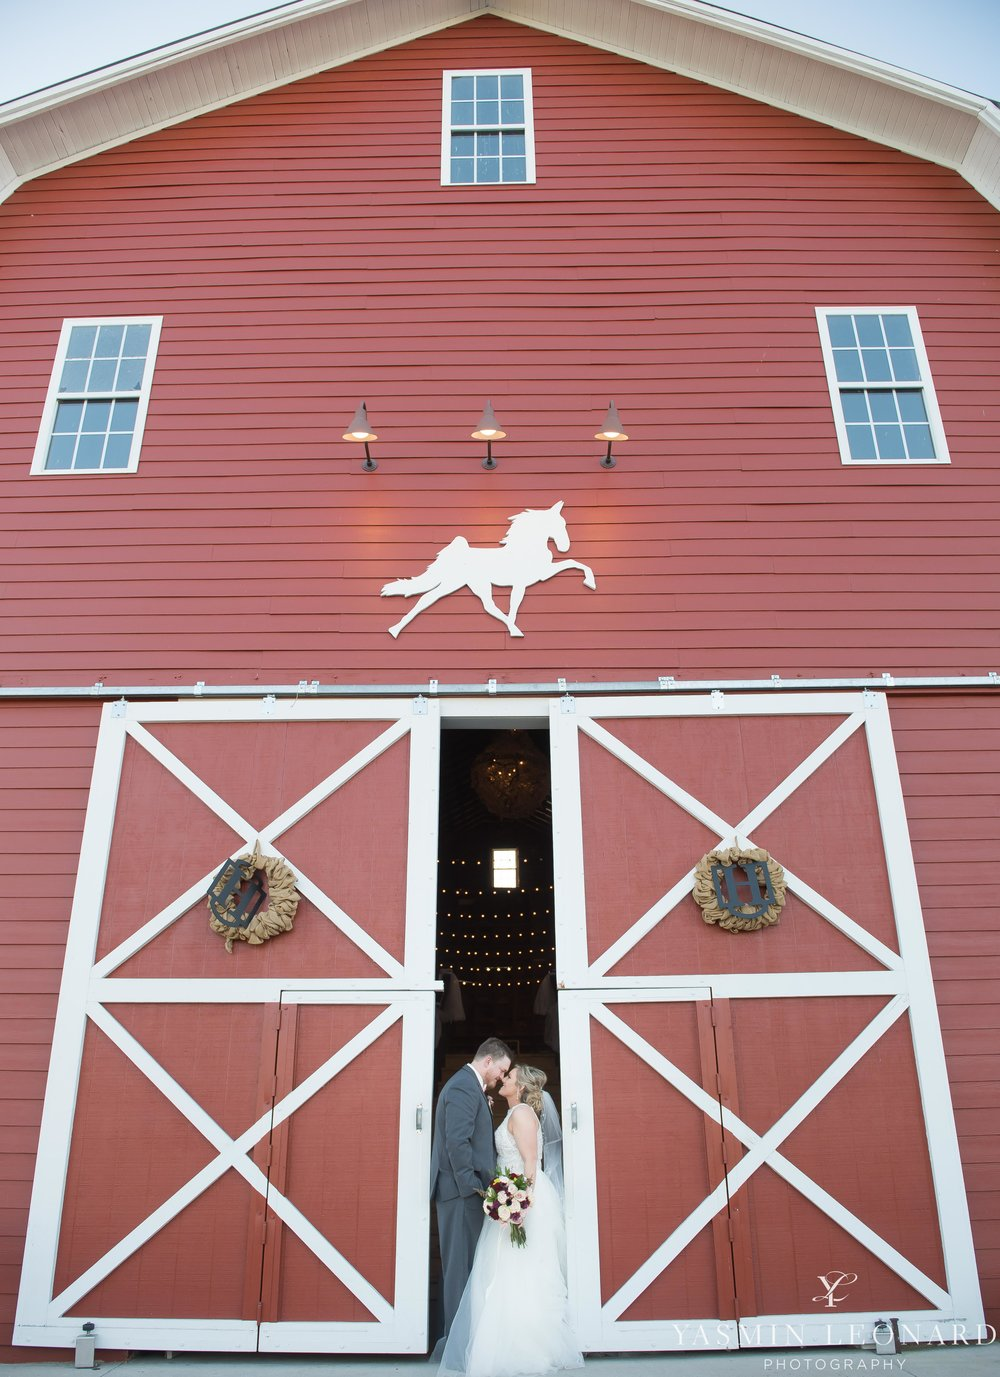 Millikan Farms - Millikan Farms Wedding - Sophia NC Wedding - NC Wedding - NC Wedding Photographer - Yasmin Leonard Photography - High Point Photographer - Barn Wedding - Wedding Venues in NC - Triad Wedding Photographer-56.jpg